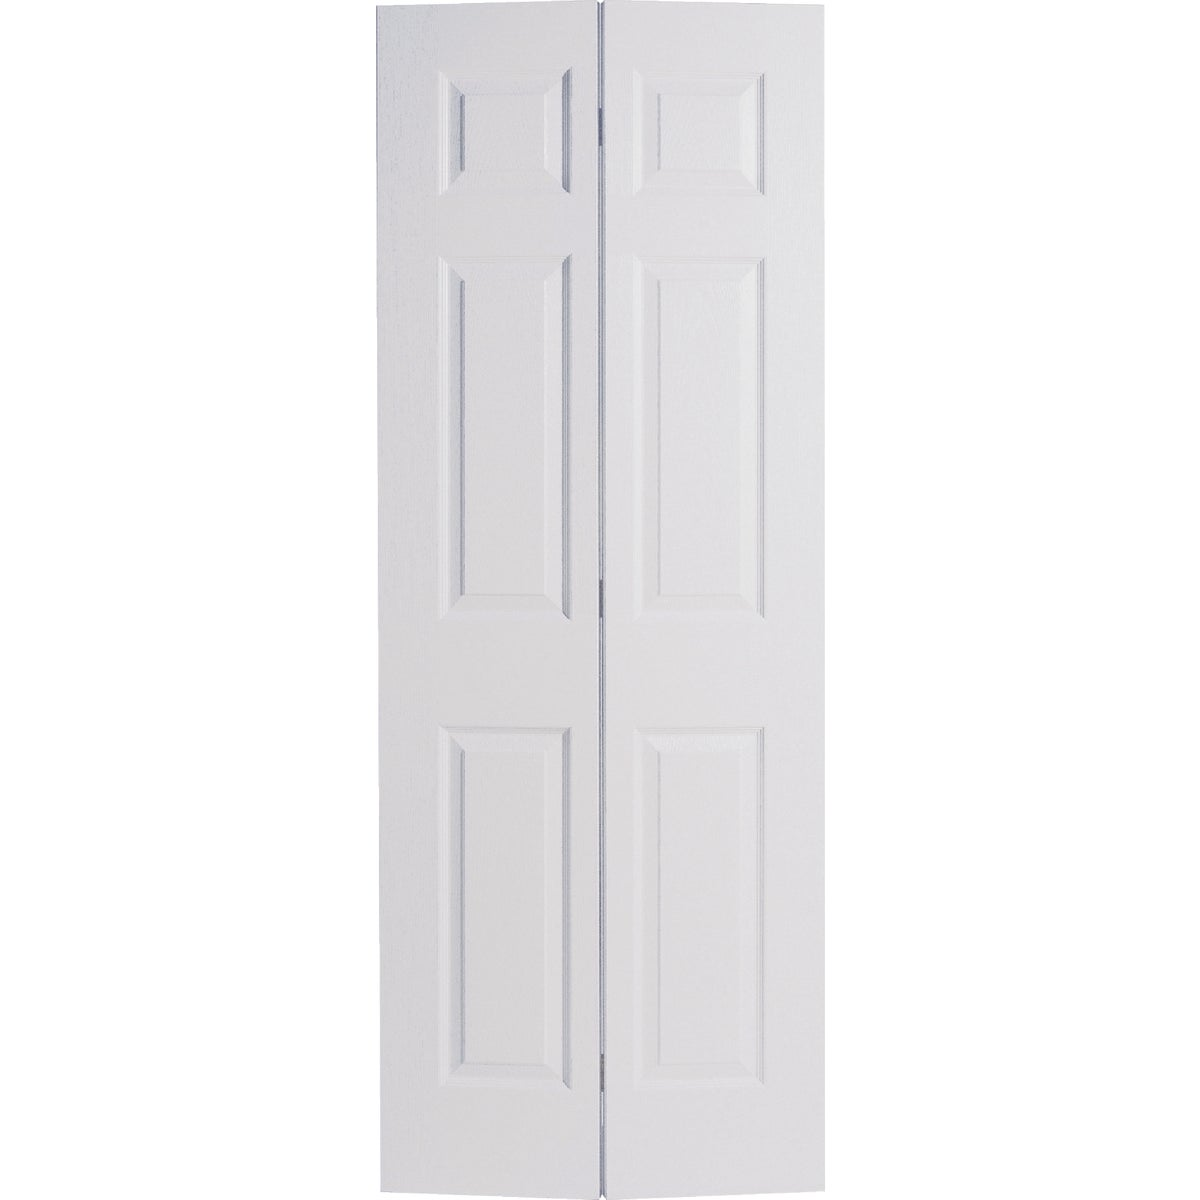 3/0 1-3/8 6PN TX BF DOOR -  by Masonite